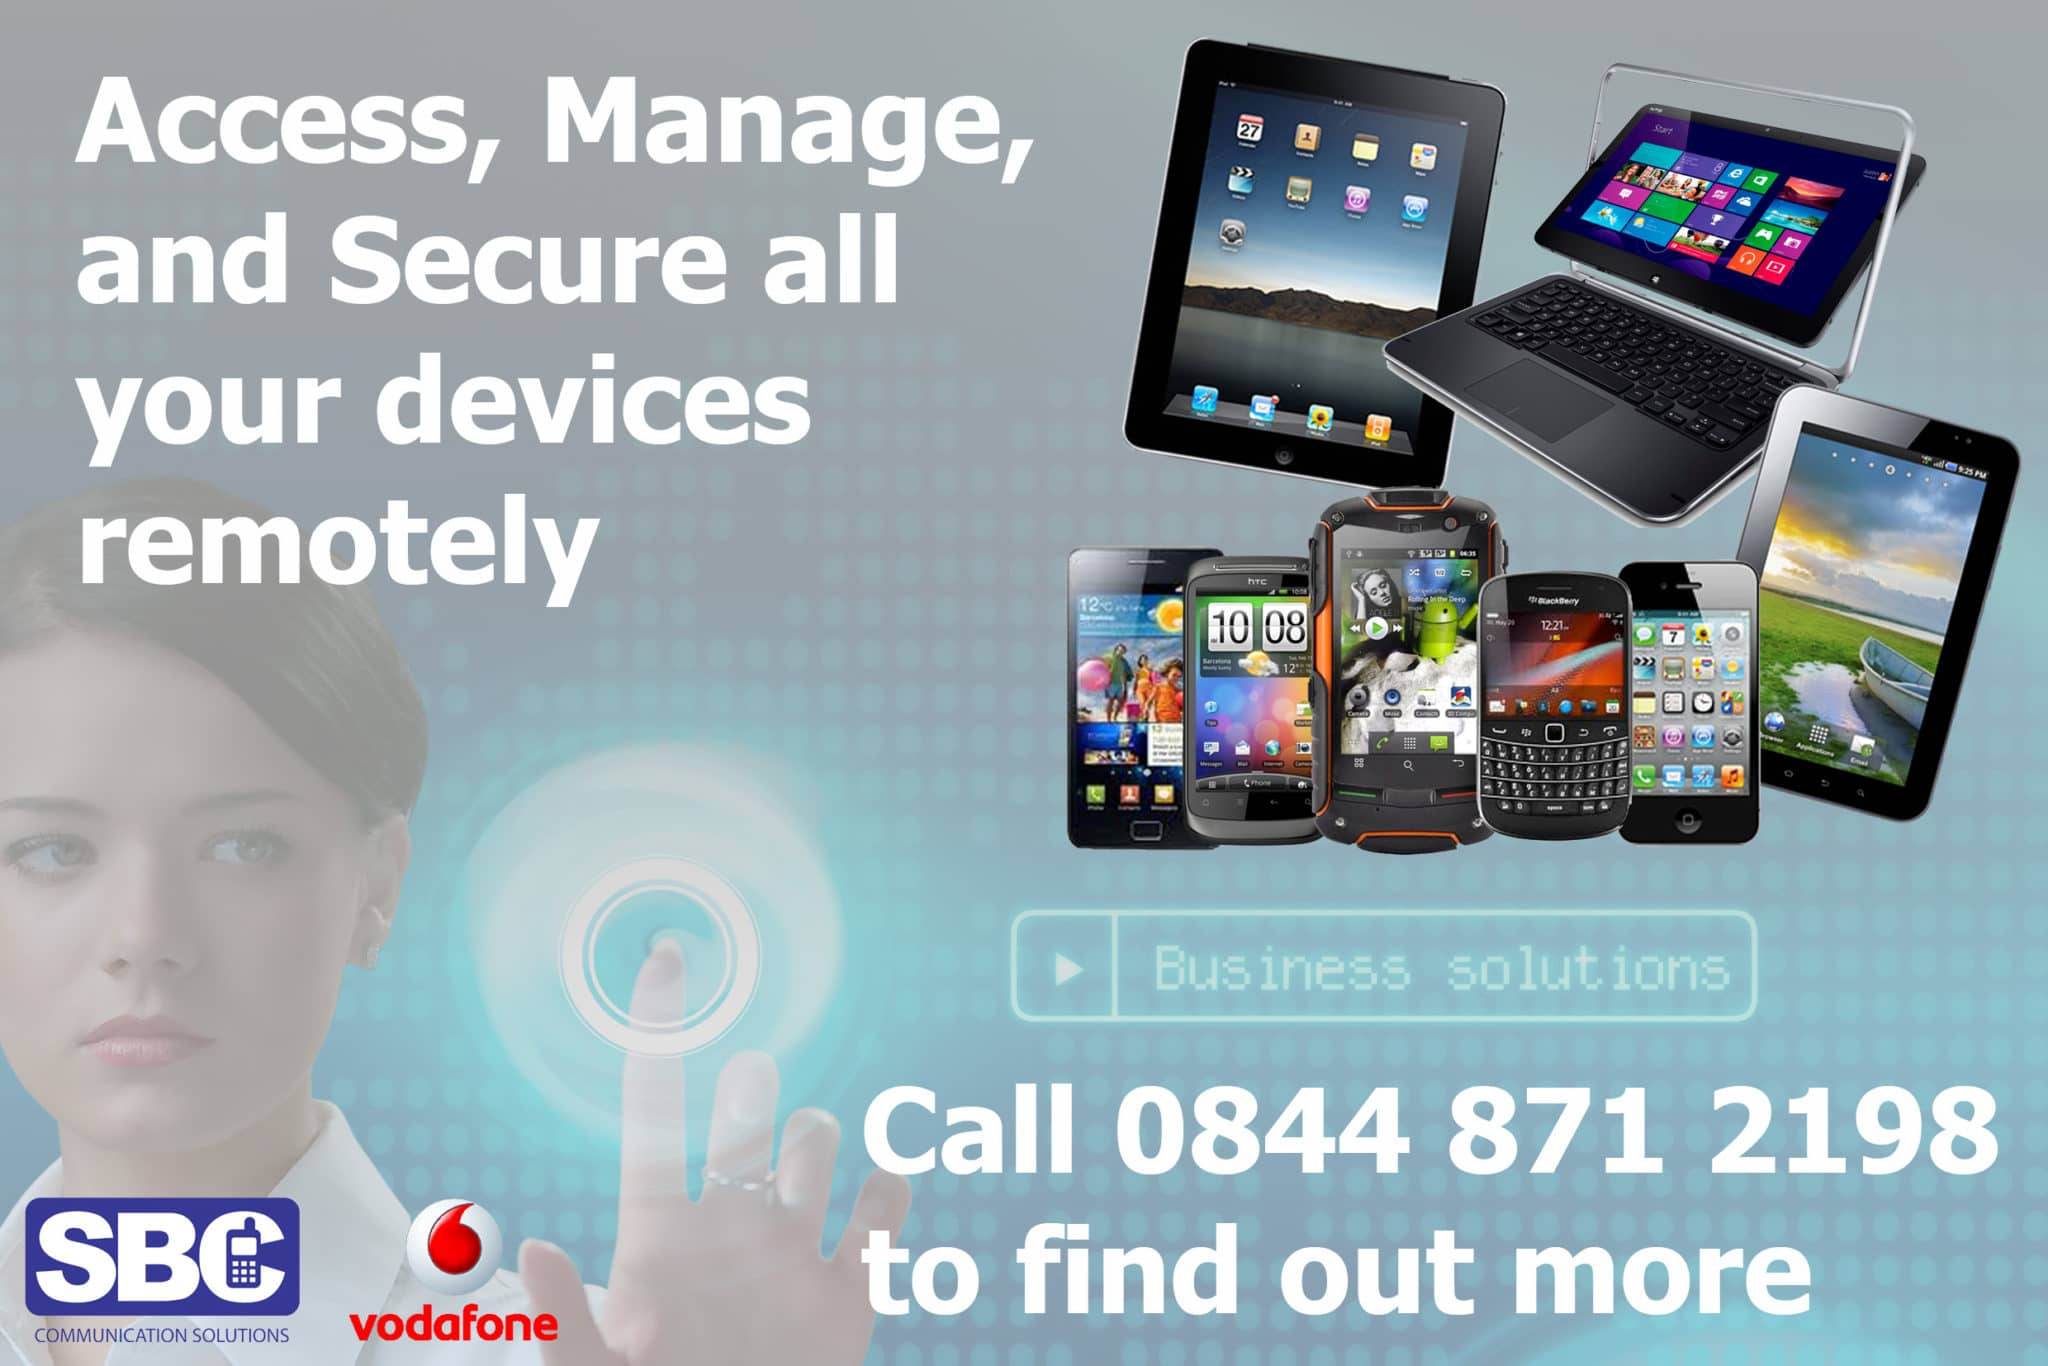 Powerful, simple-to-use device management for your smartphones and tablets